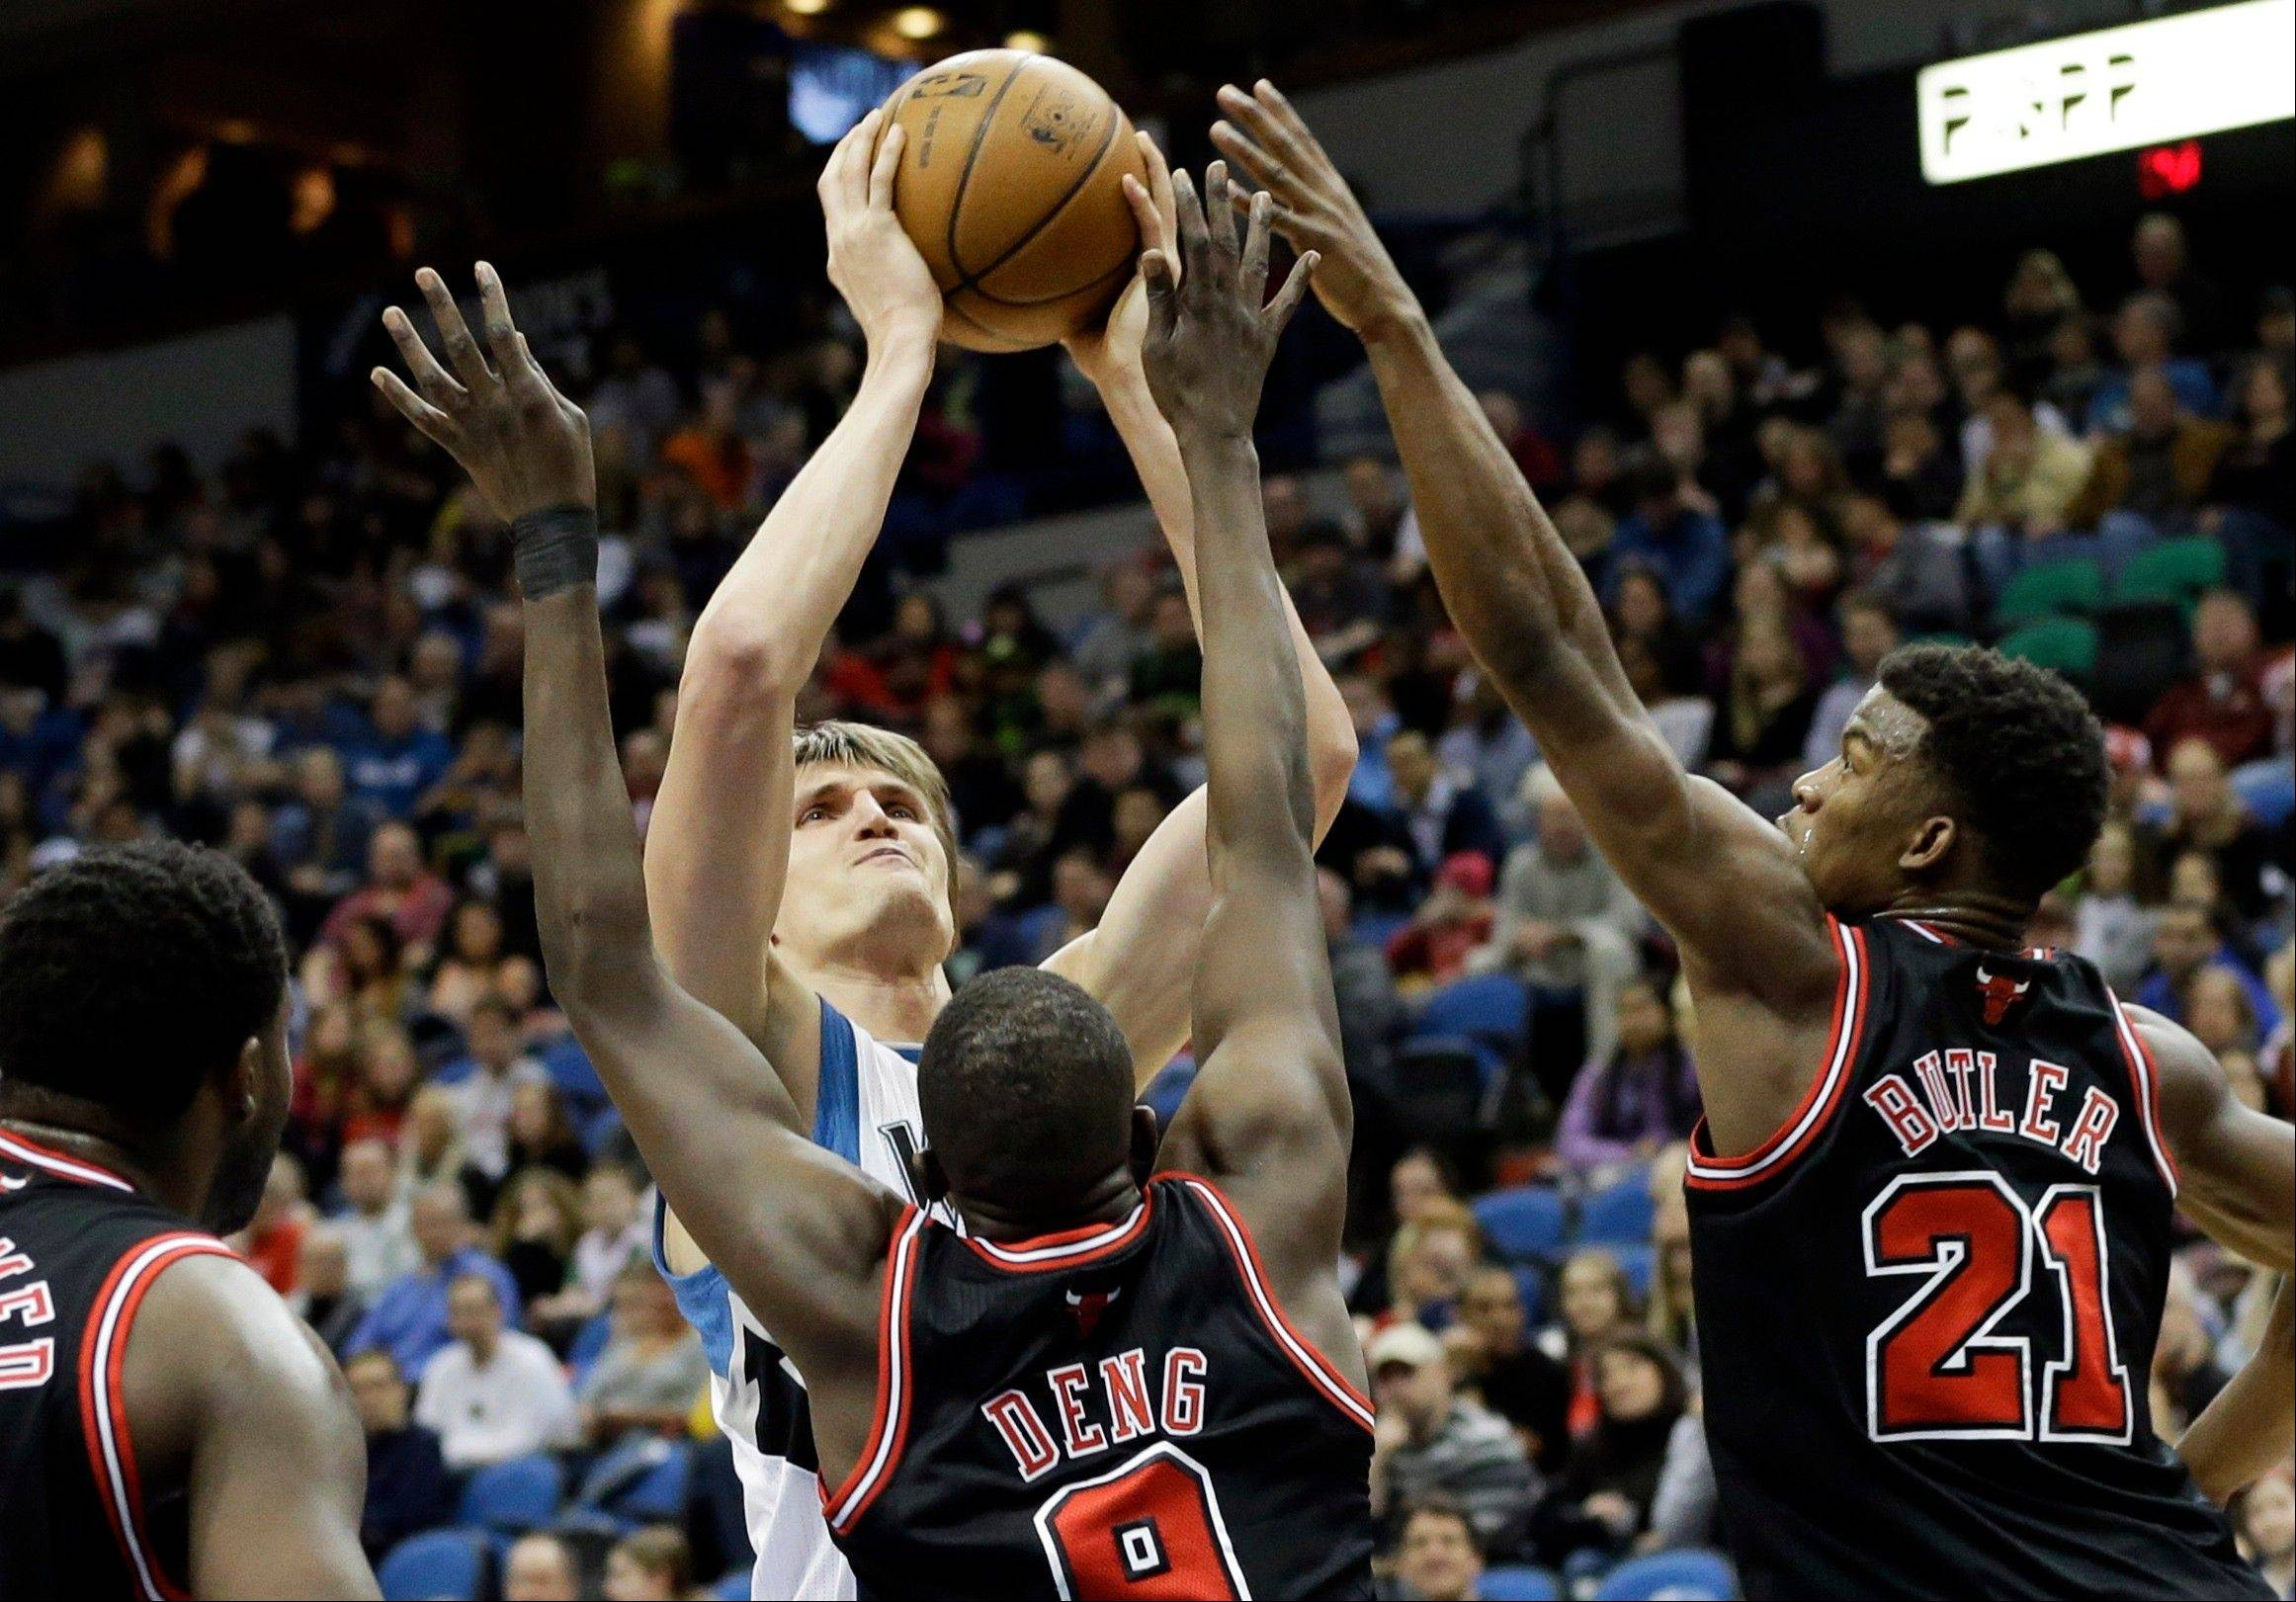 Butler, Deng an explosive combination for Bulls